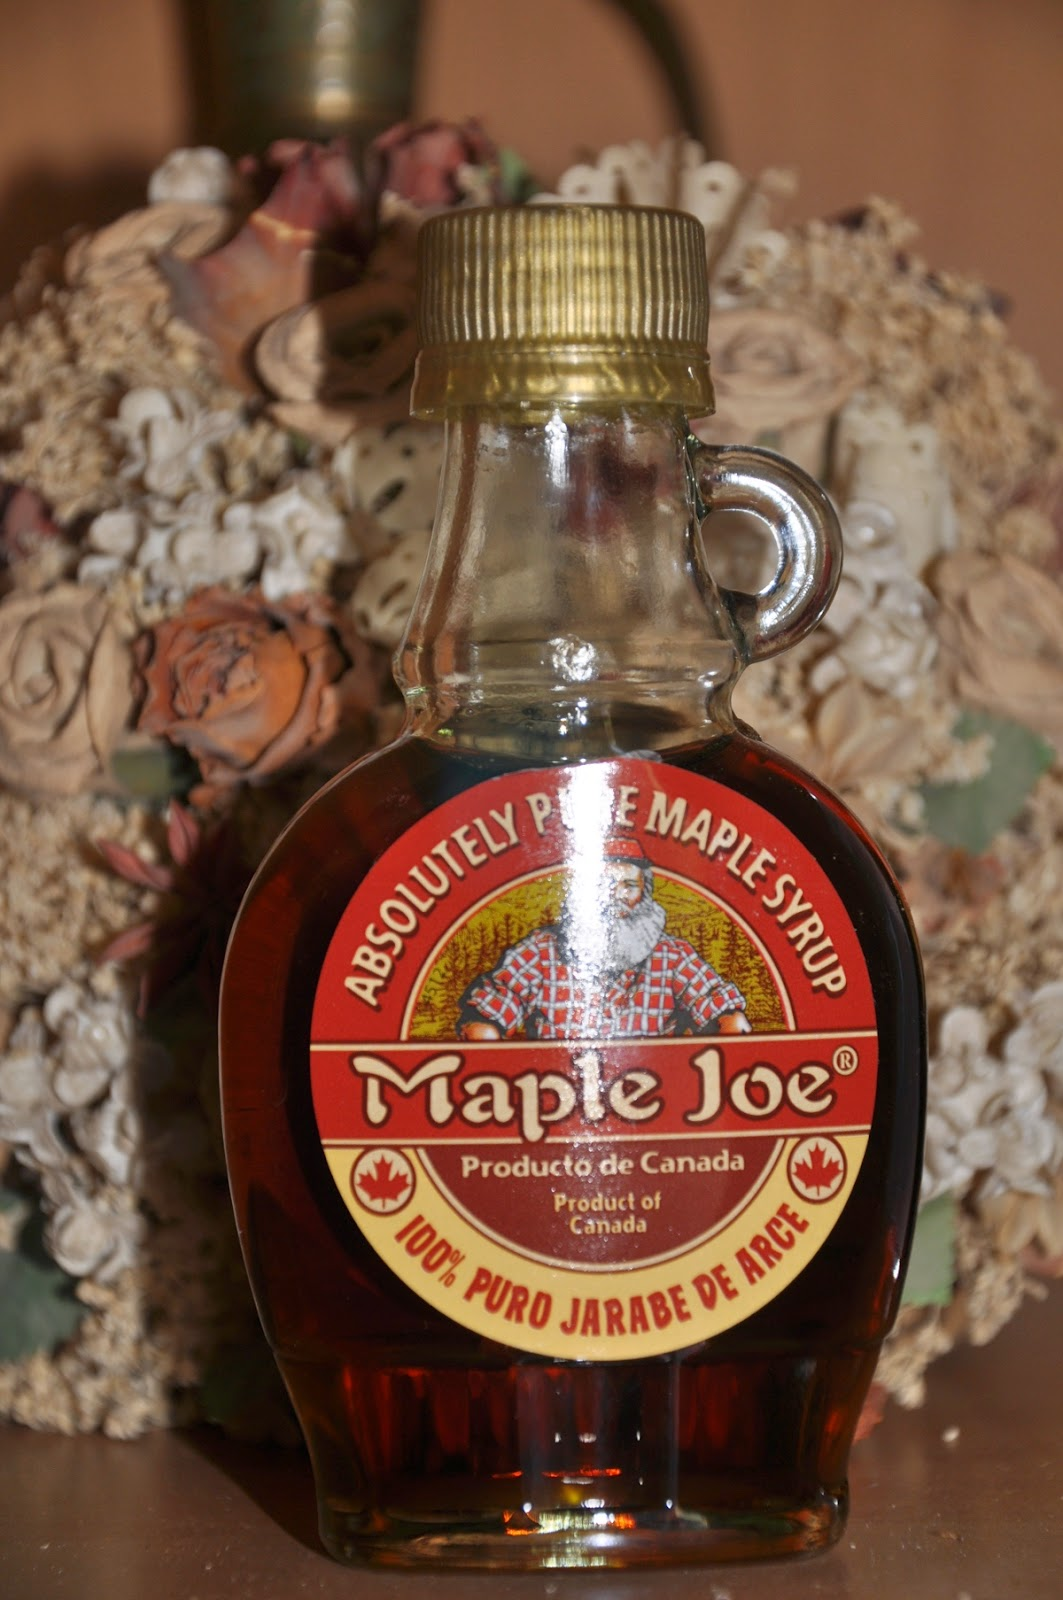 http://www.lunademiel.com/-Maple-Joe-.html